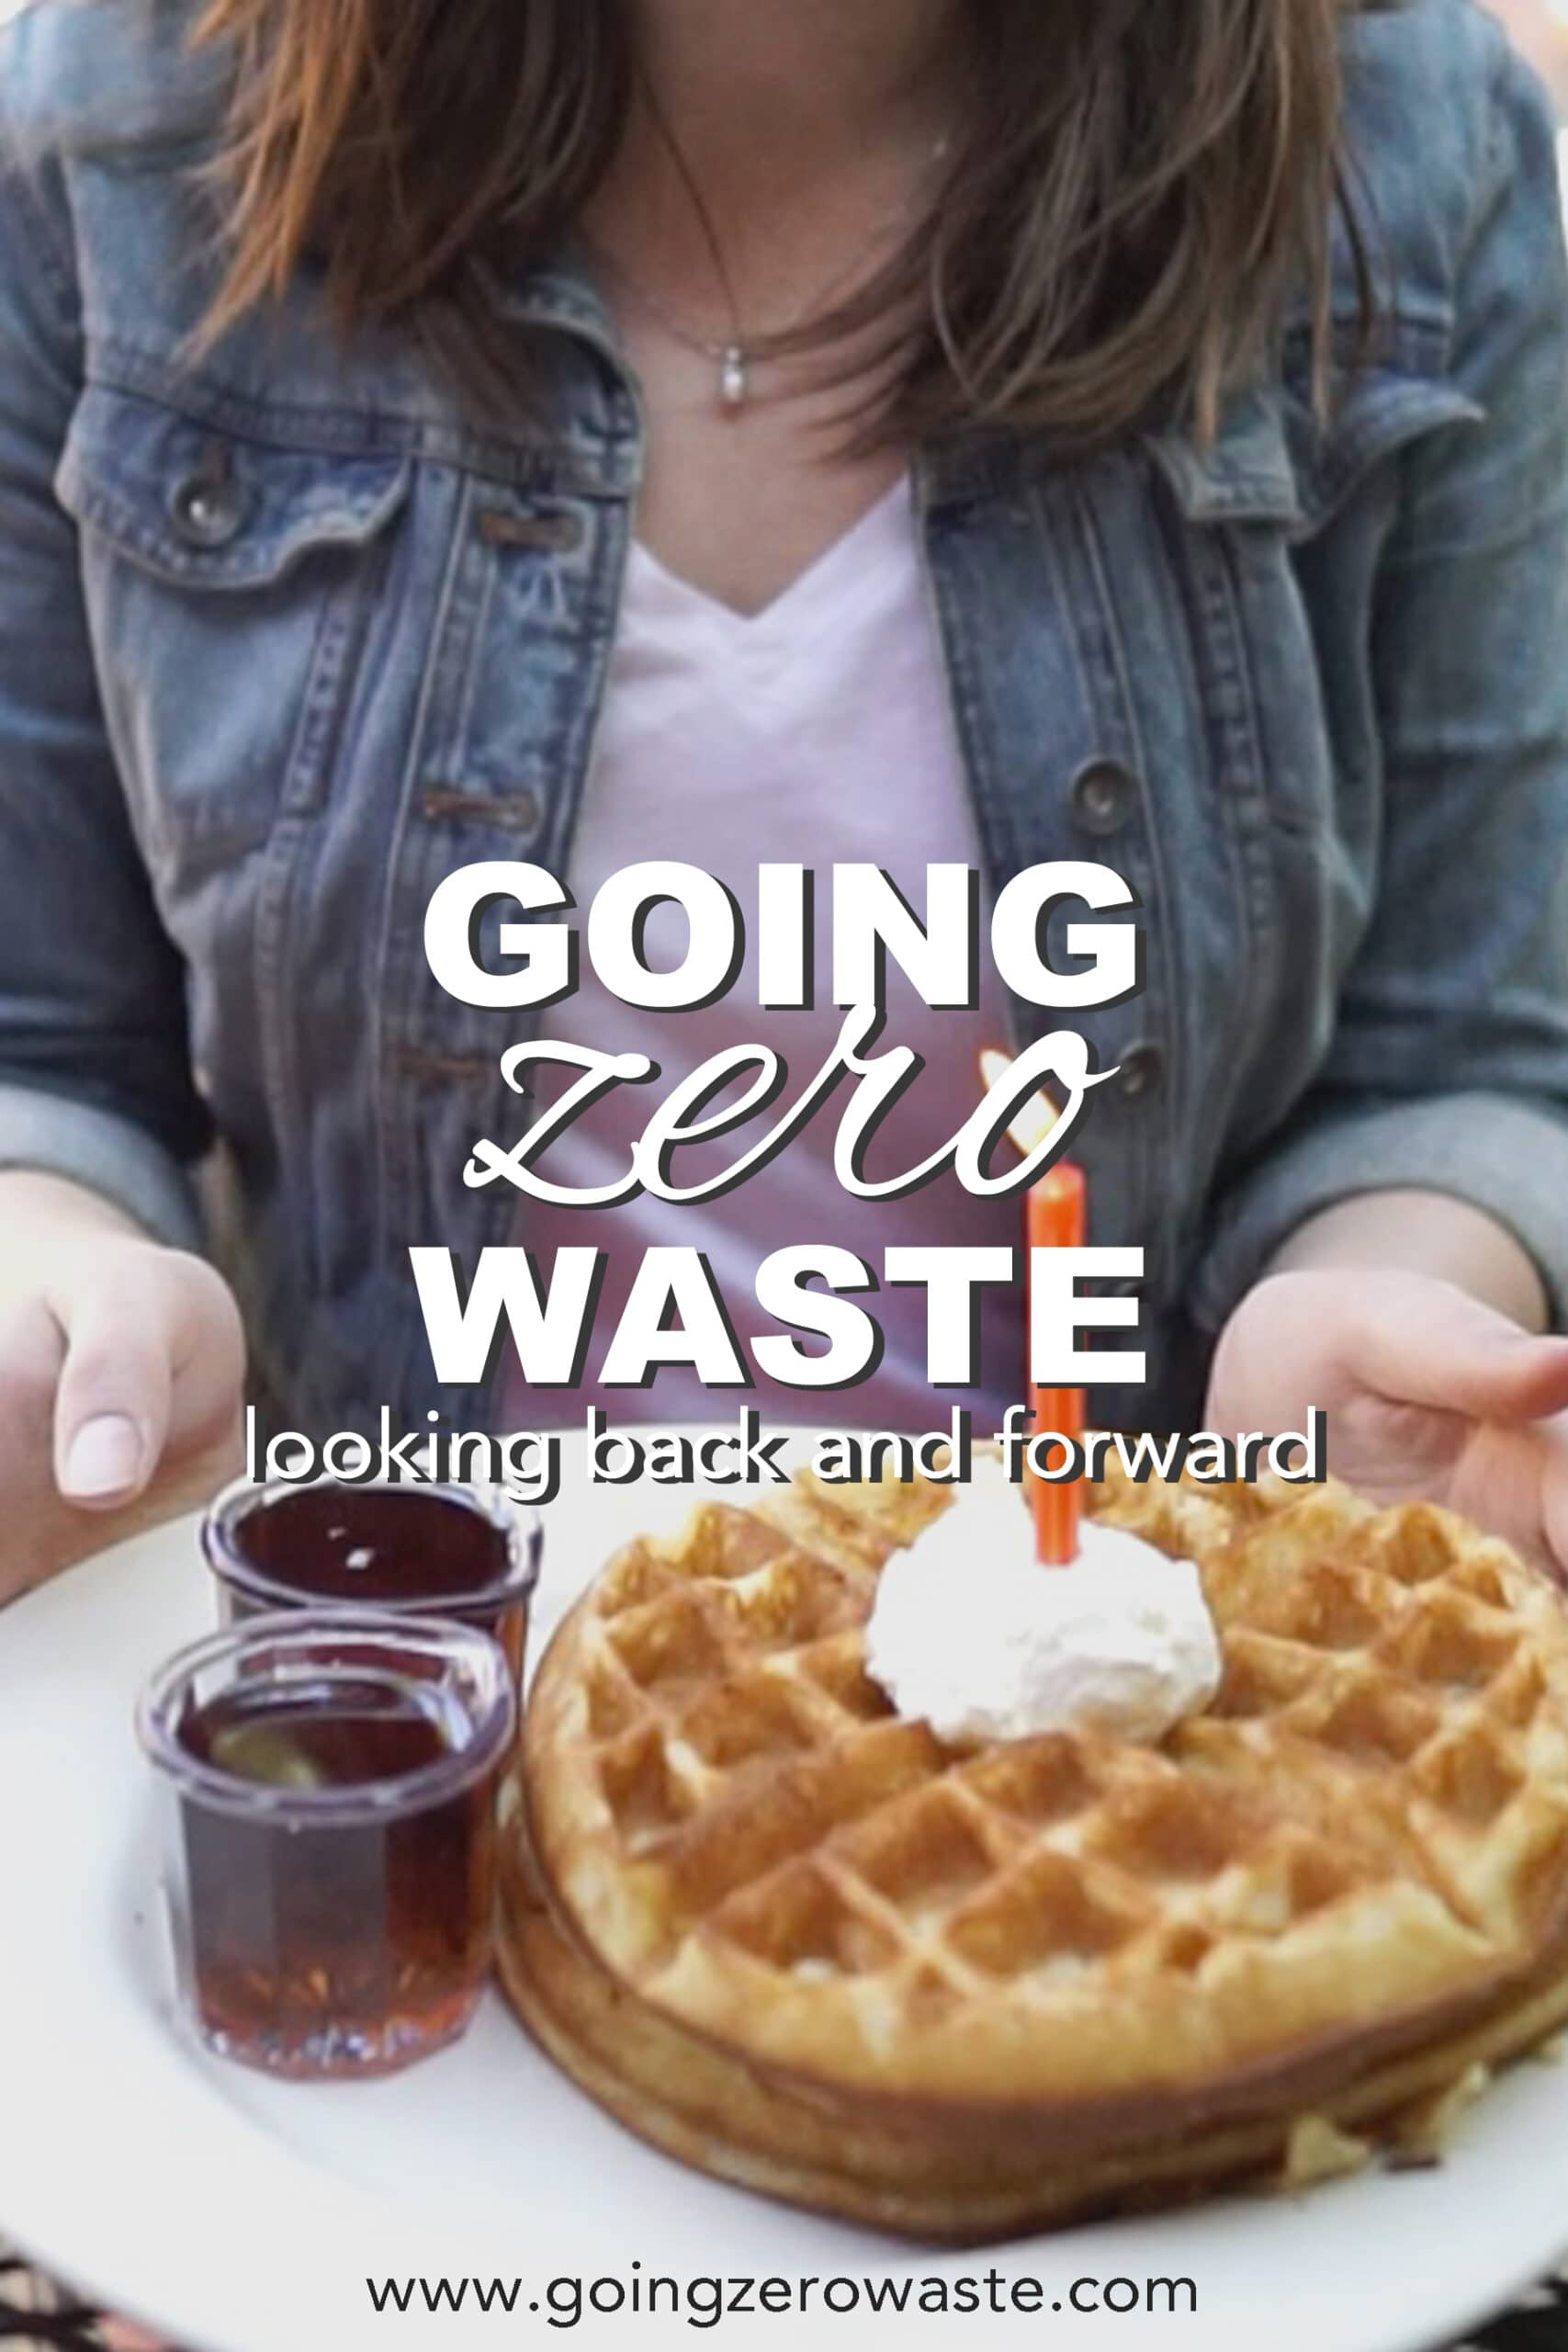 Going Zero Waste Looking Back and Forward